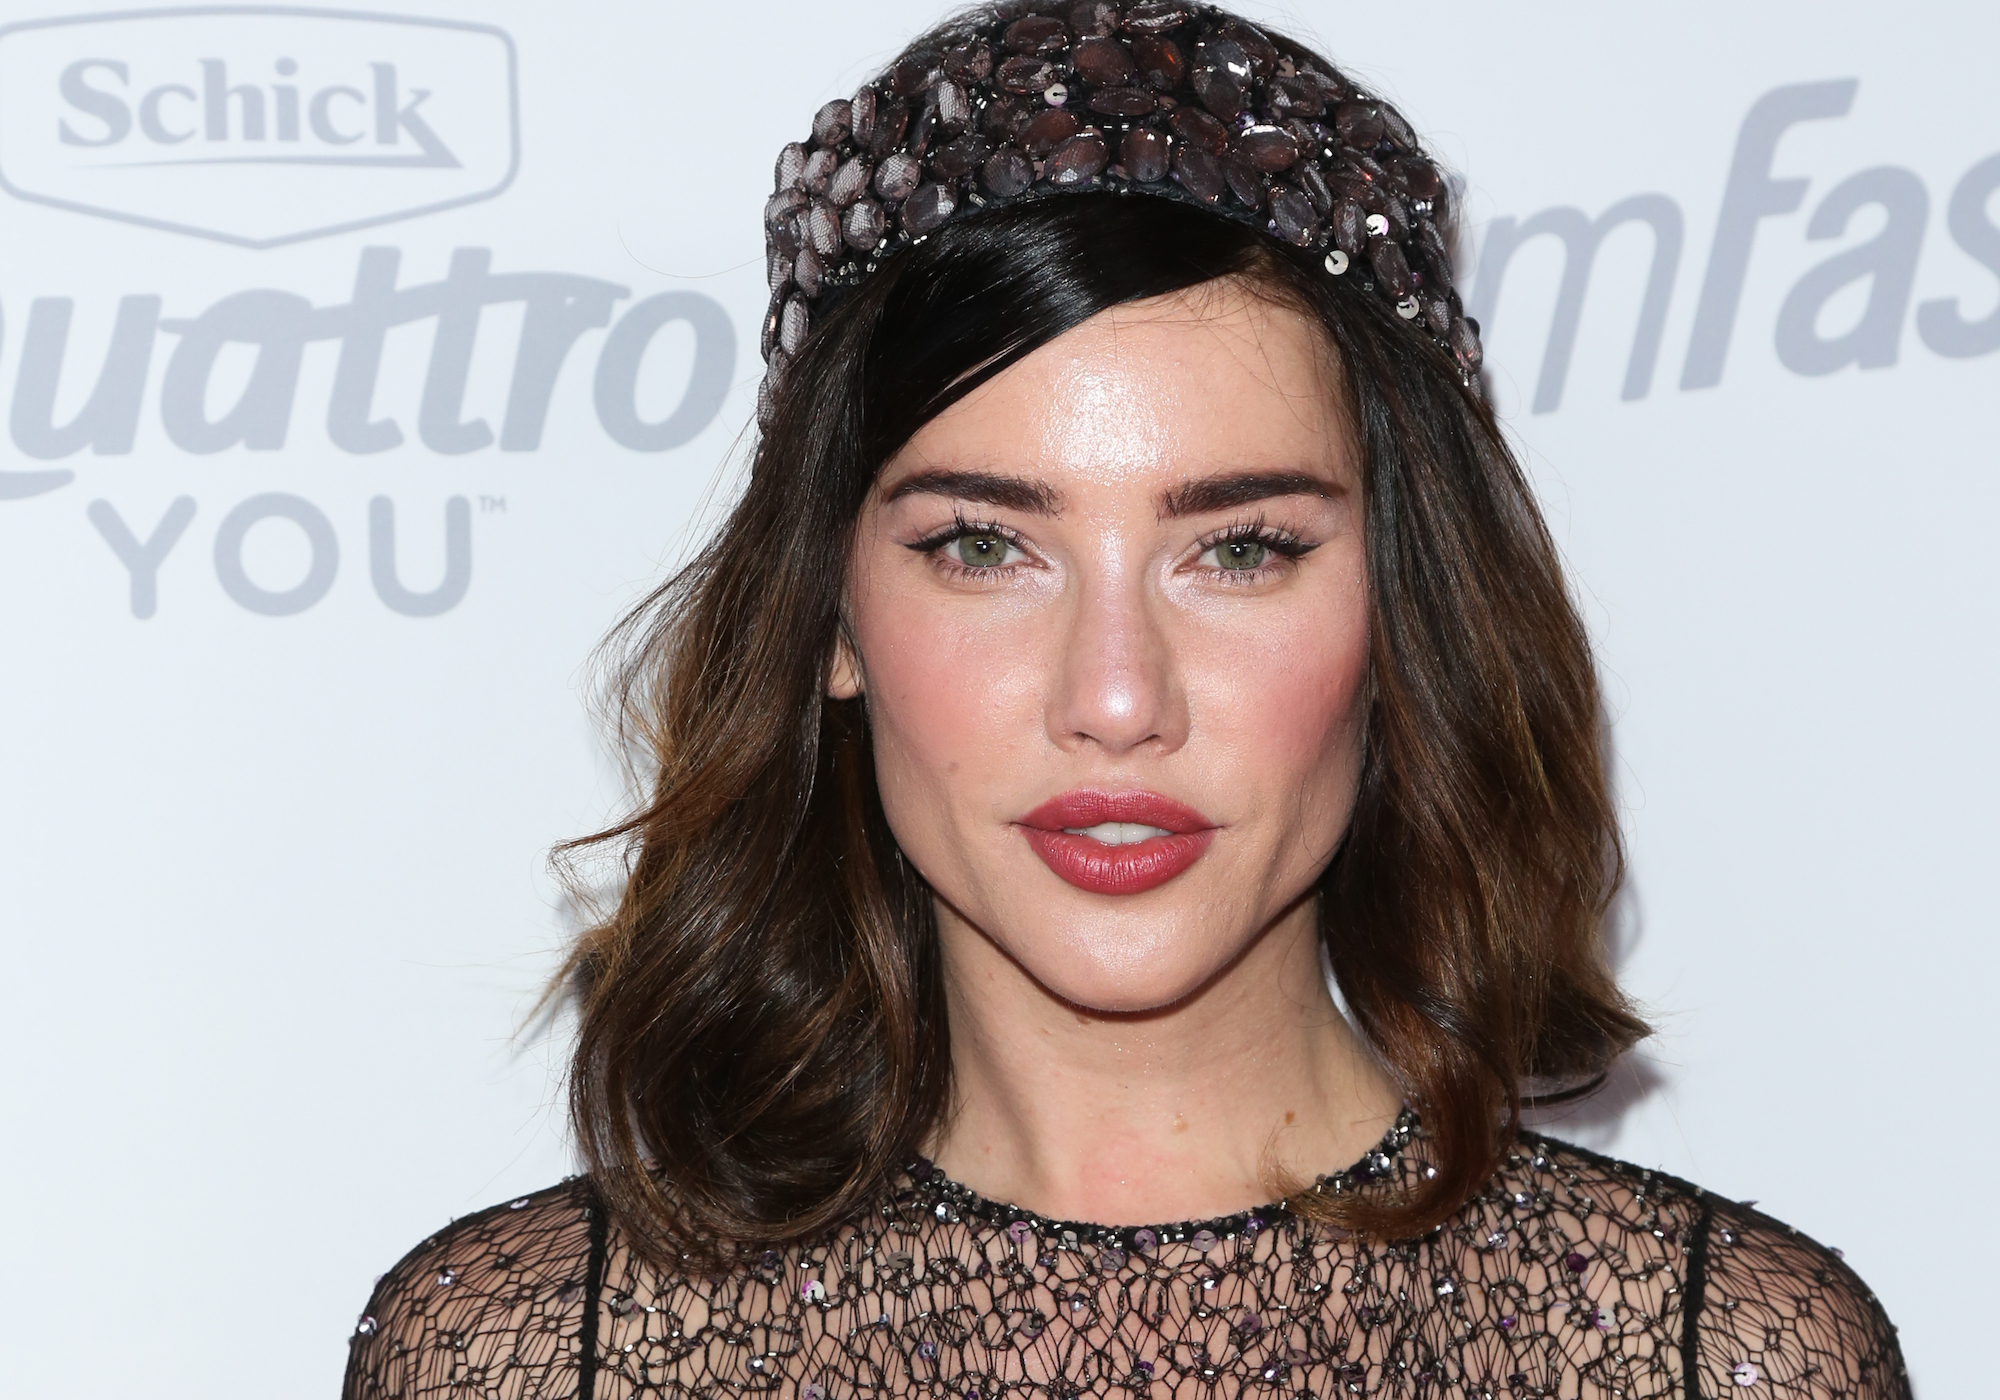 Did the Bold and the Beautiful star Jacqueline MacInnes Wood get plastic surgery? Before and After